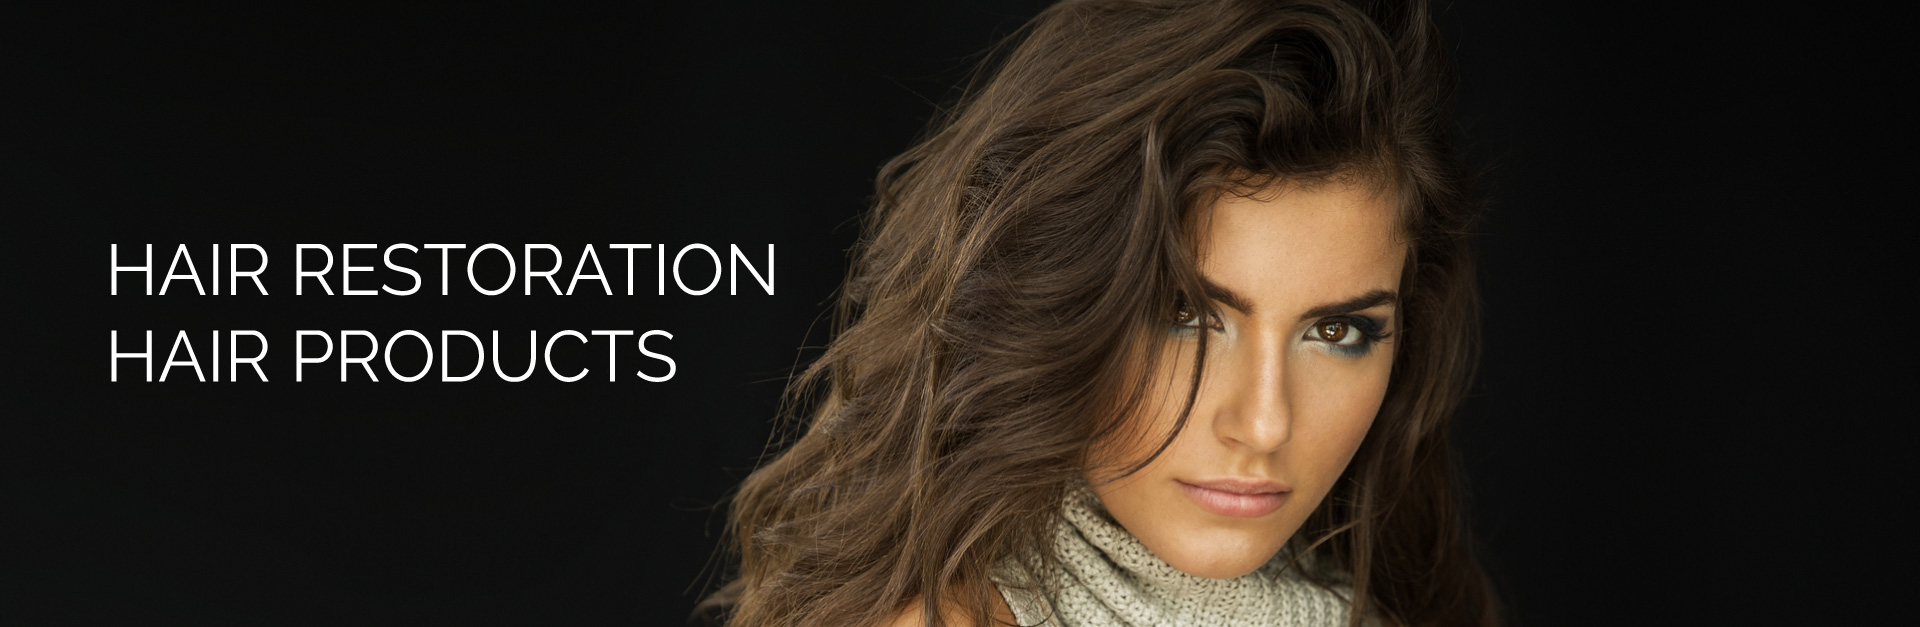 Hair Restoration Products in Knoxville